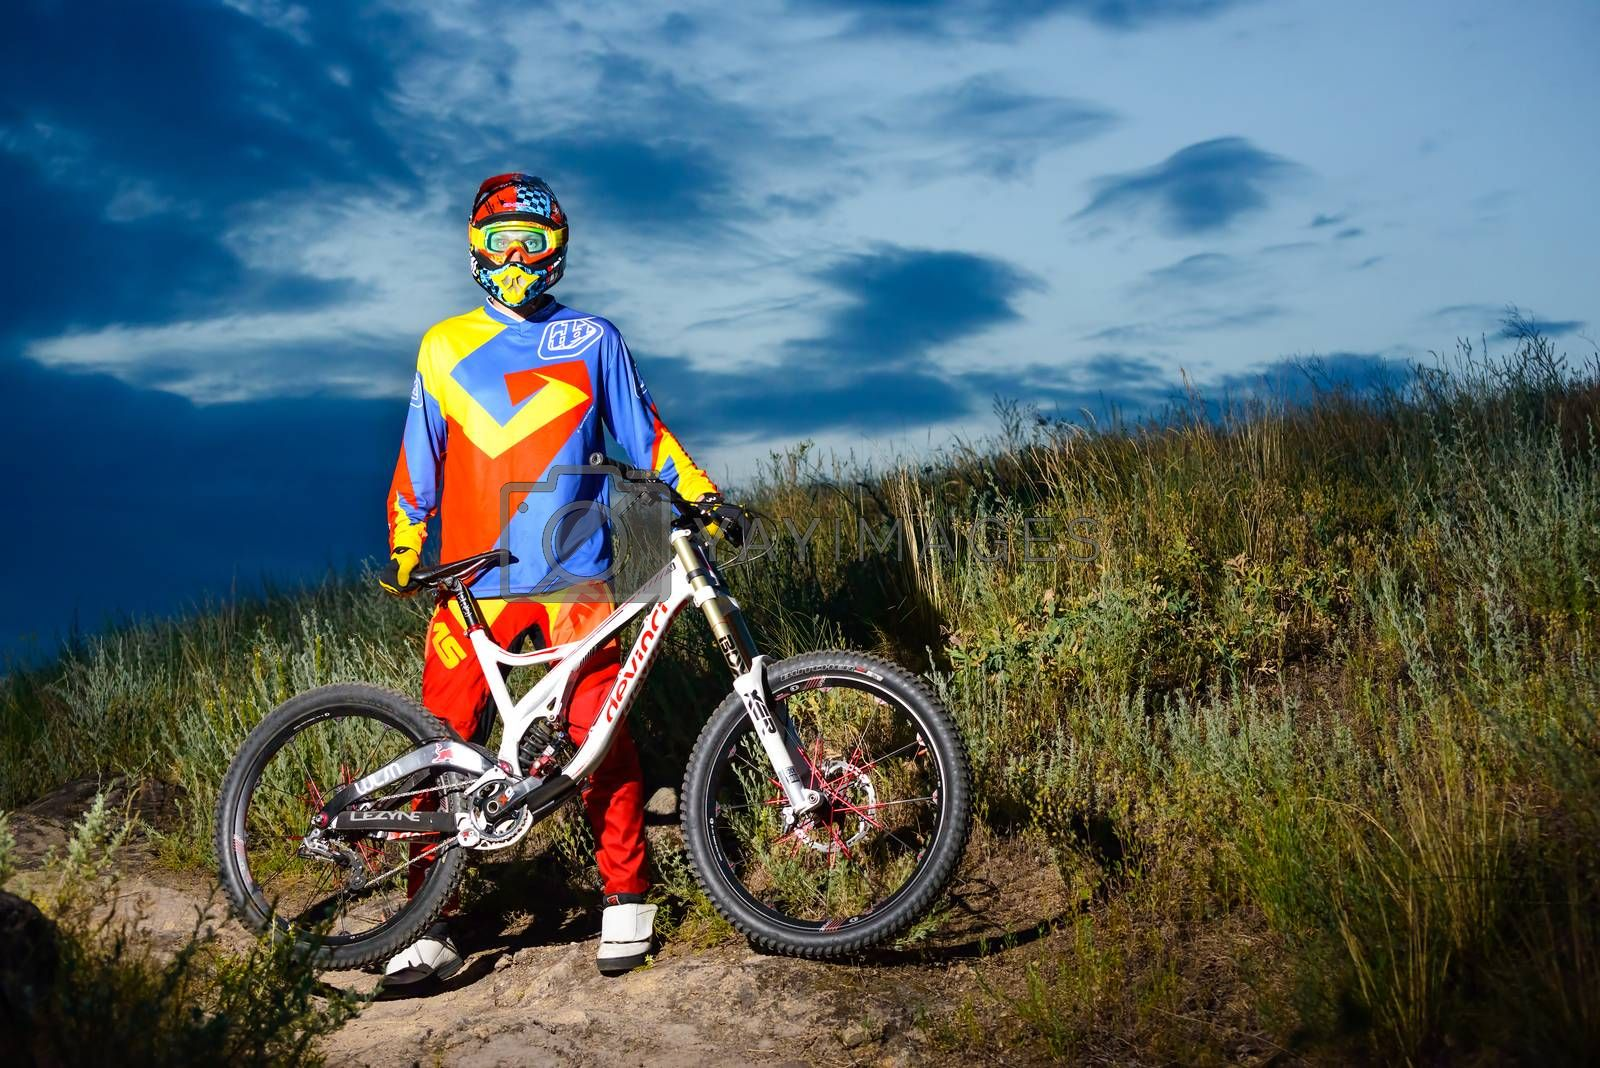 Fully Equipped Professional Downhill Cyclist with Bike on the Night Rocky Trail by maxpro